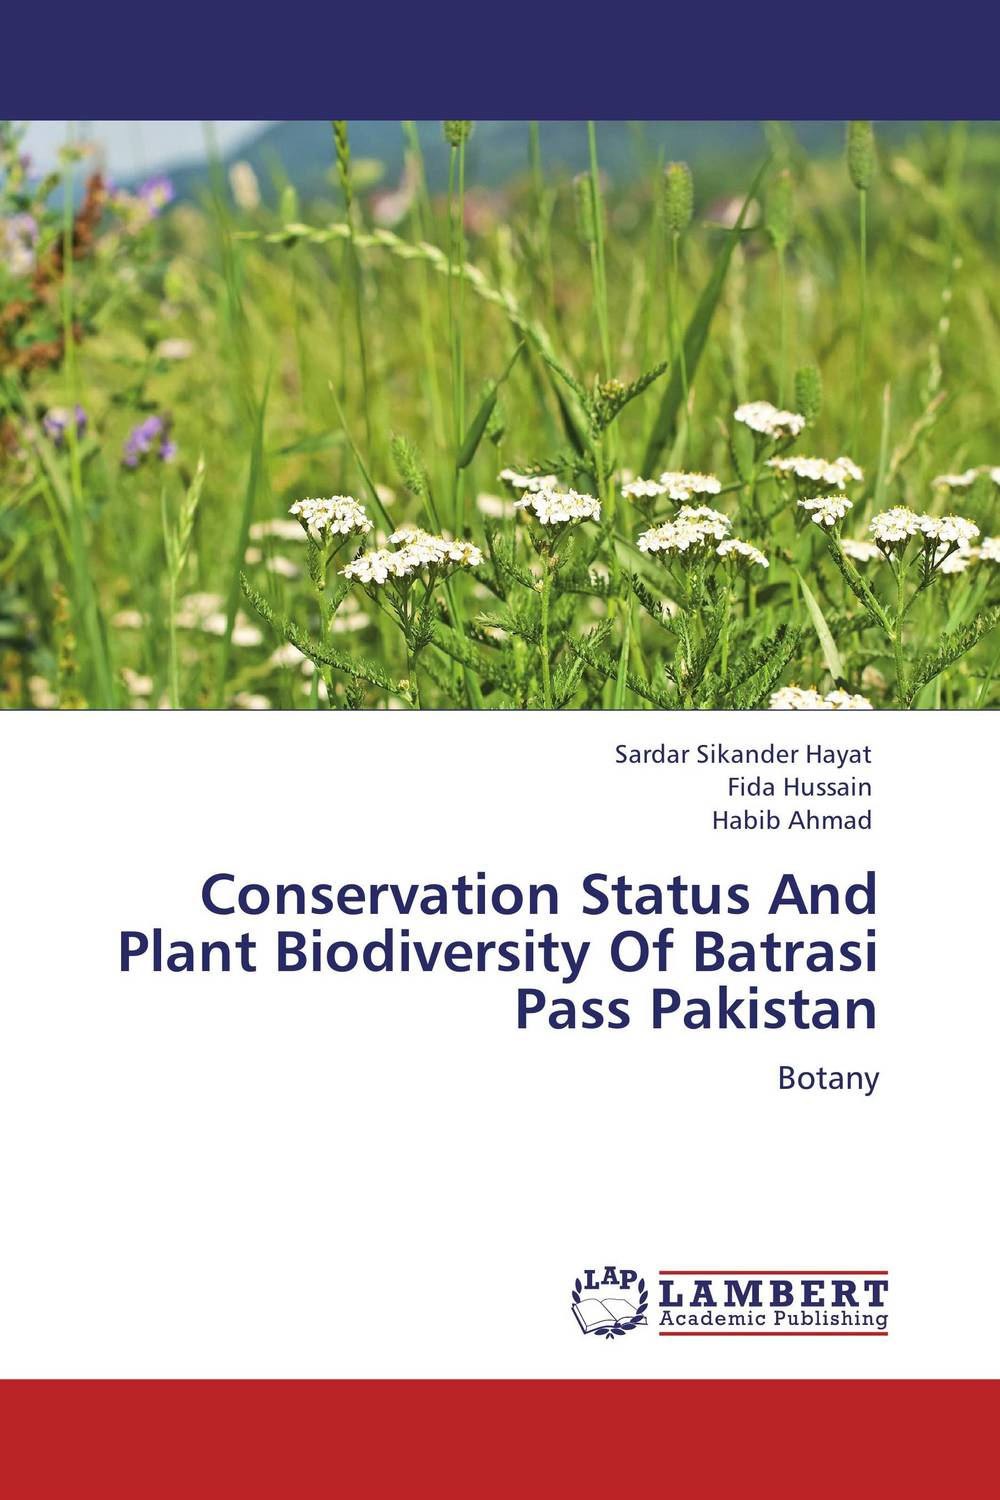 Conservation Status And Plant Biodiversity Of Batrasi Pass Pakistan detailed morphology of two species of phthiraptera from pakistan